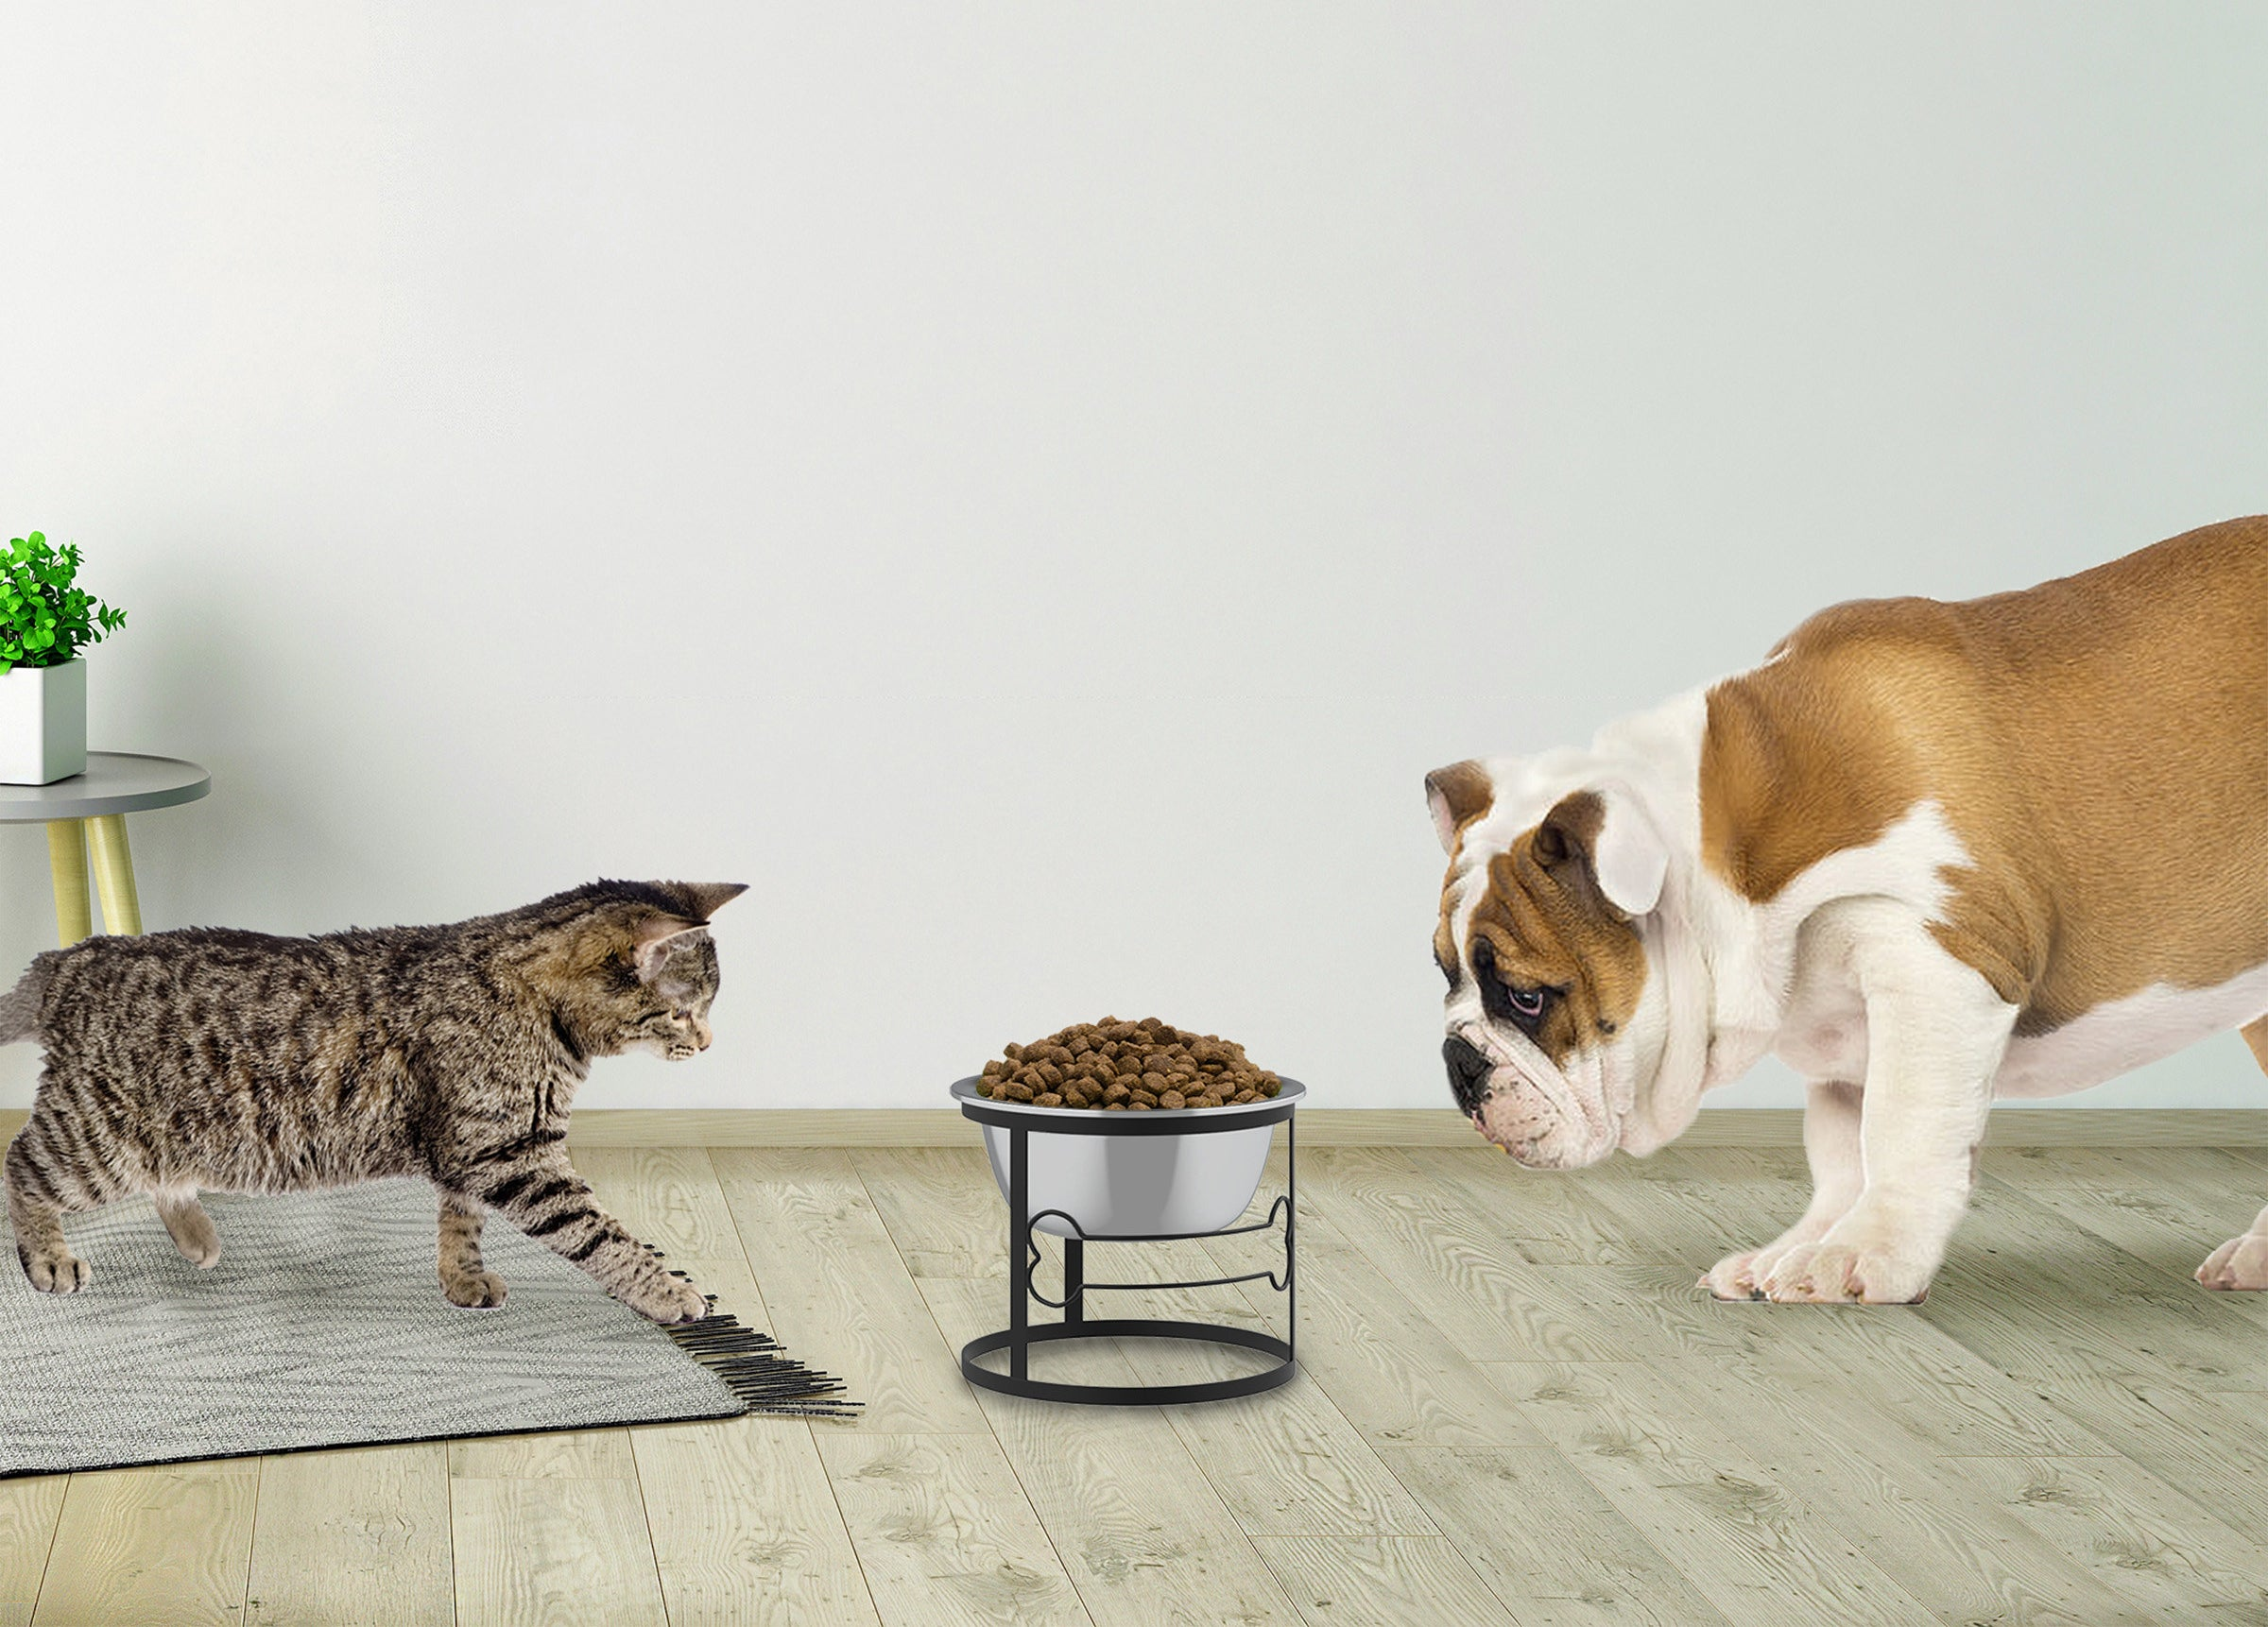 A dog and cat looking at the bowl, which is held in a black elevated frame with a bone design